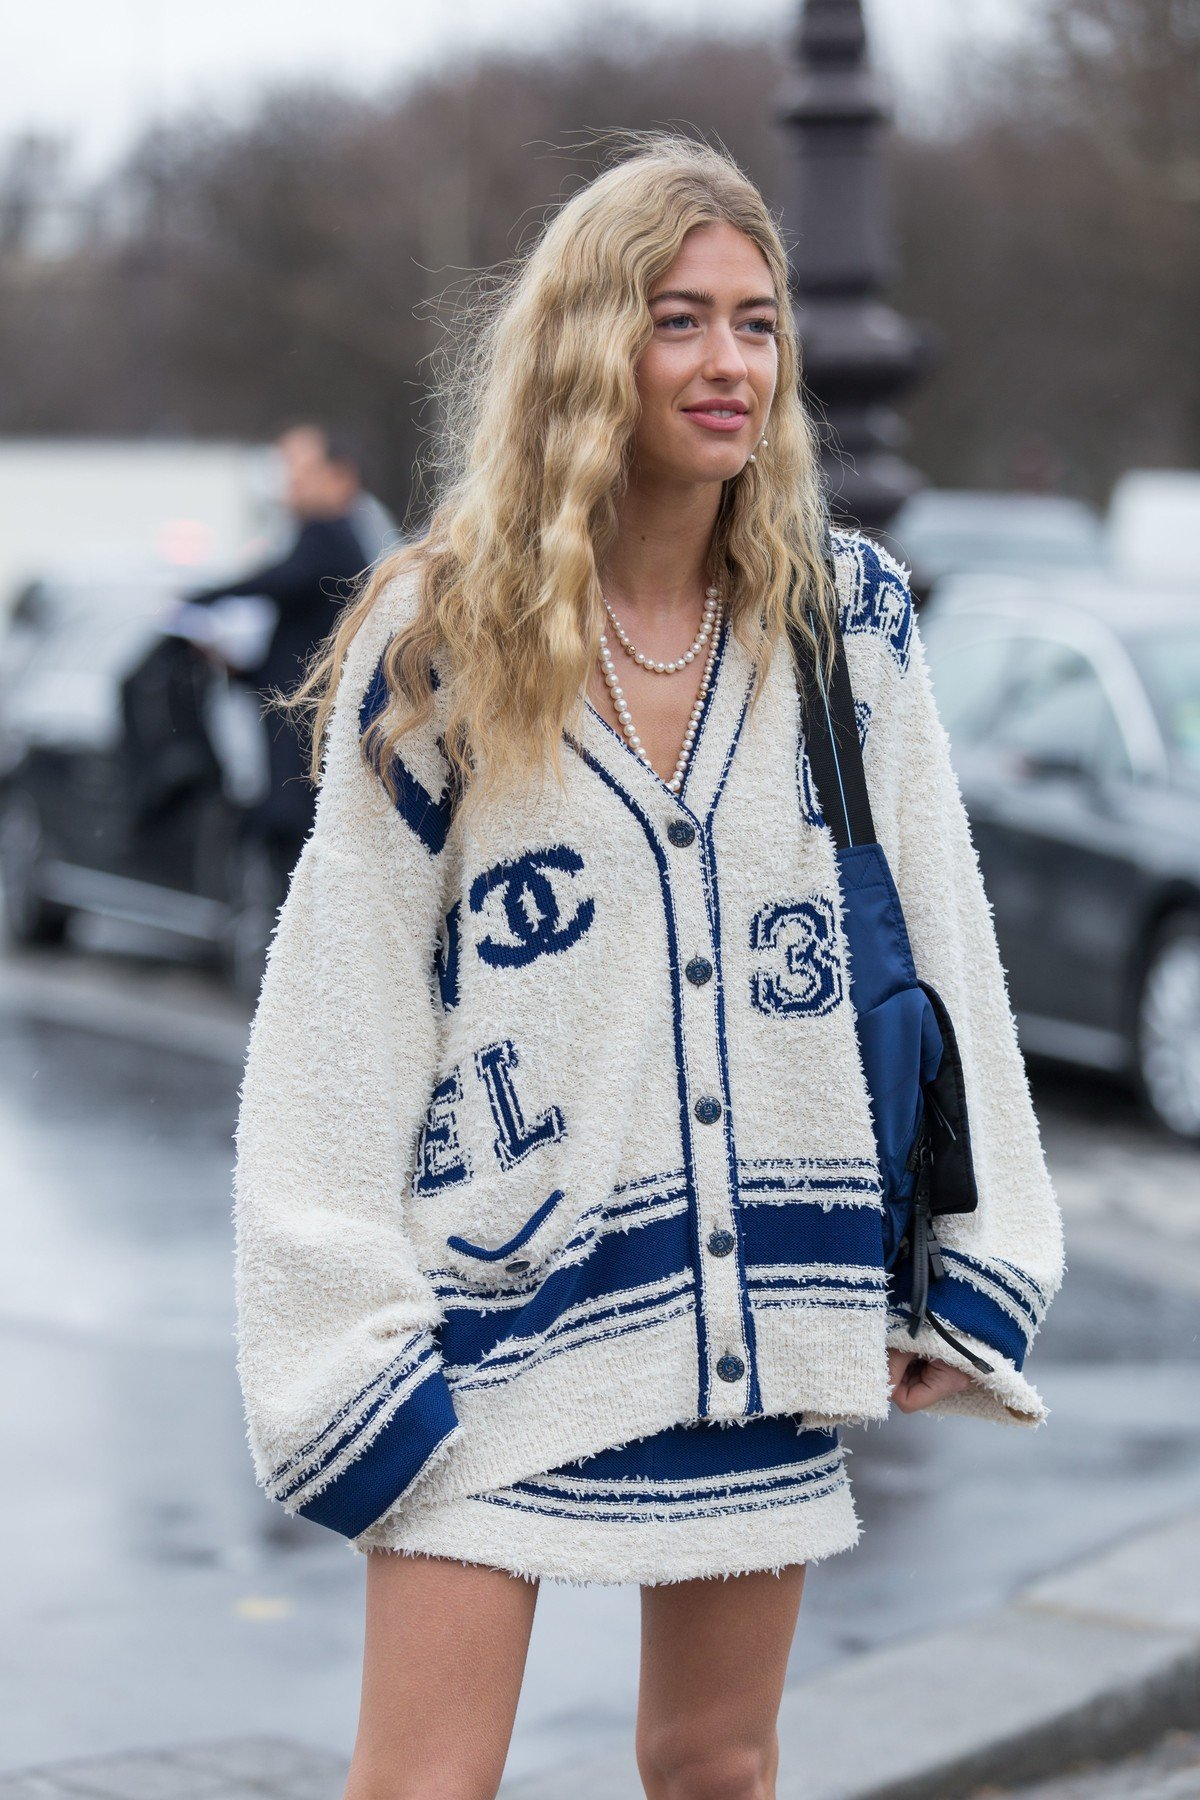 Street Style Street Style, Fall Winter 2019, Paris Fashion Week, France - 05 Mar 2019, Image: 417496407, License: Rights-managed, Restrictions: , Model Release: no, Credit line: Profimedia, TEMP Rex Features